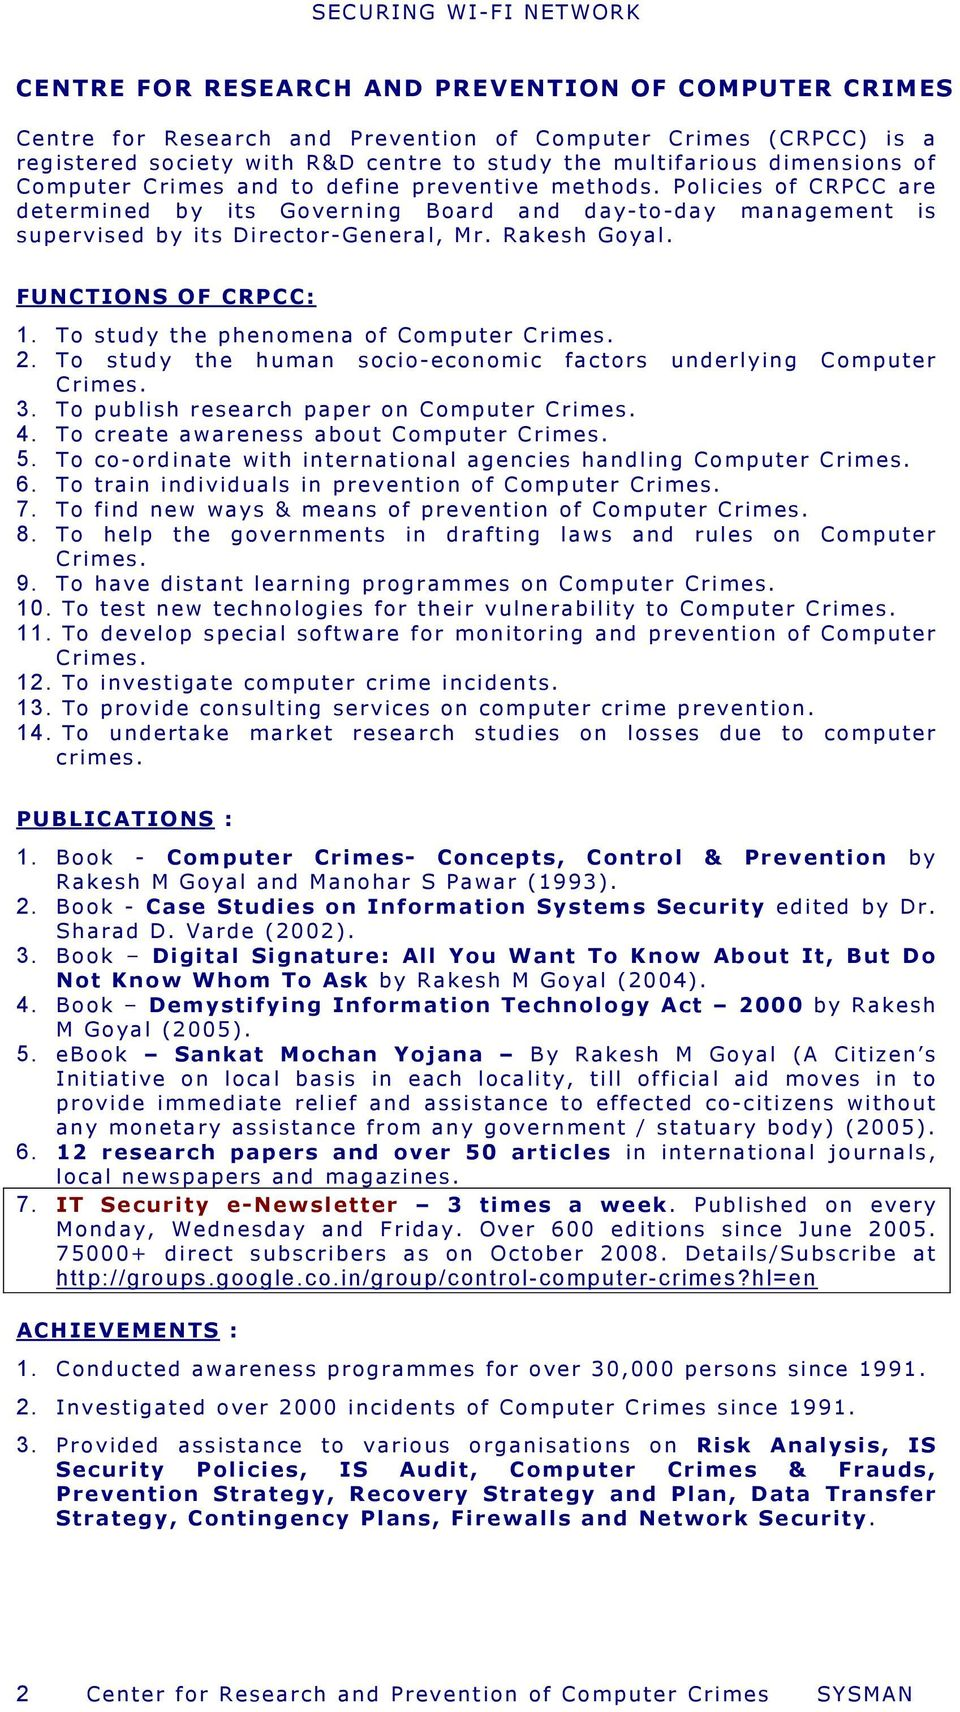 FUNCTIONS OF CRPCC: 1. To study the phenomena of Computer Crimes. 2. To study the human socio-economic factors underlying Computer Crimes. 3. To publish research paper on Computer Crimes. 4.